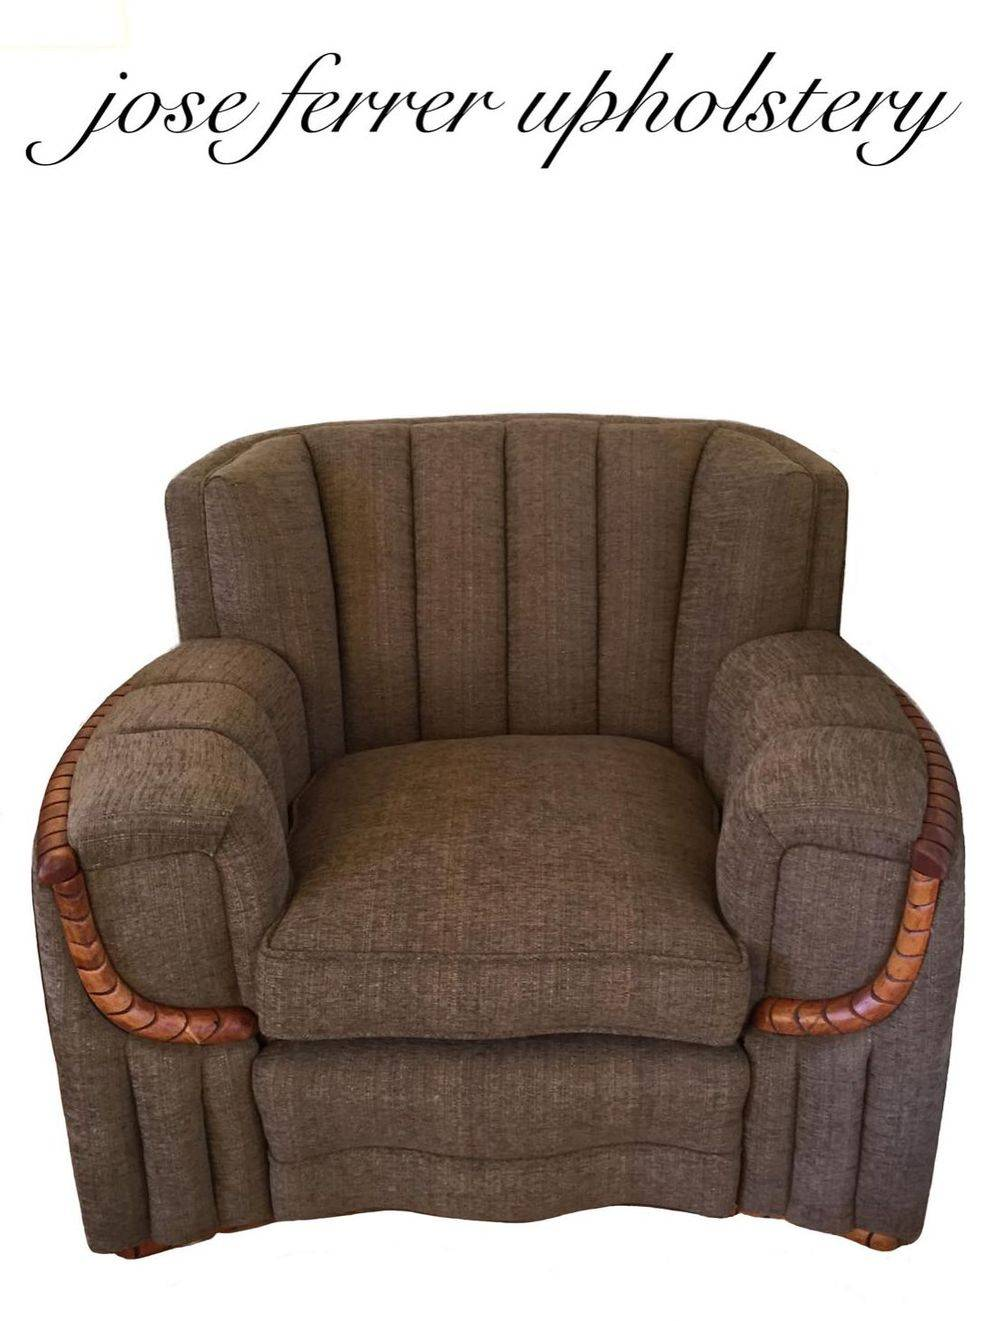 large channel back chair reupholstered in brown fabric  by jose ferrer upholstery in santa rosa ca